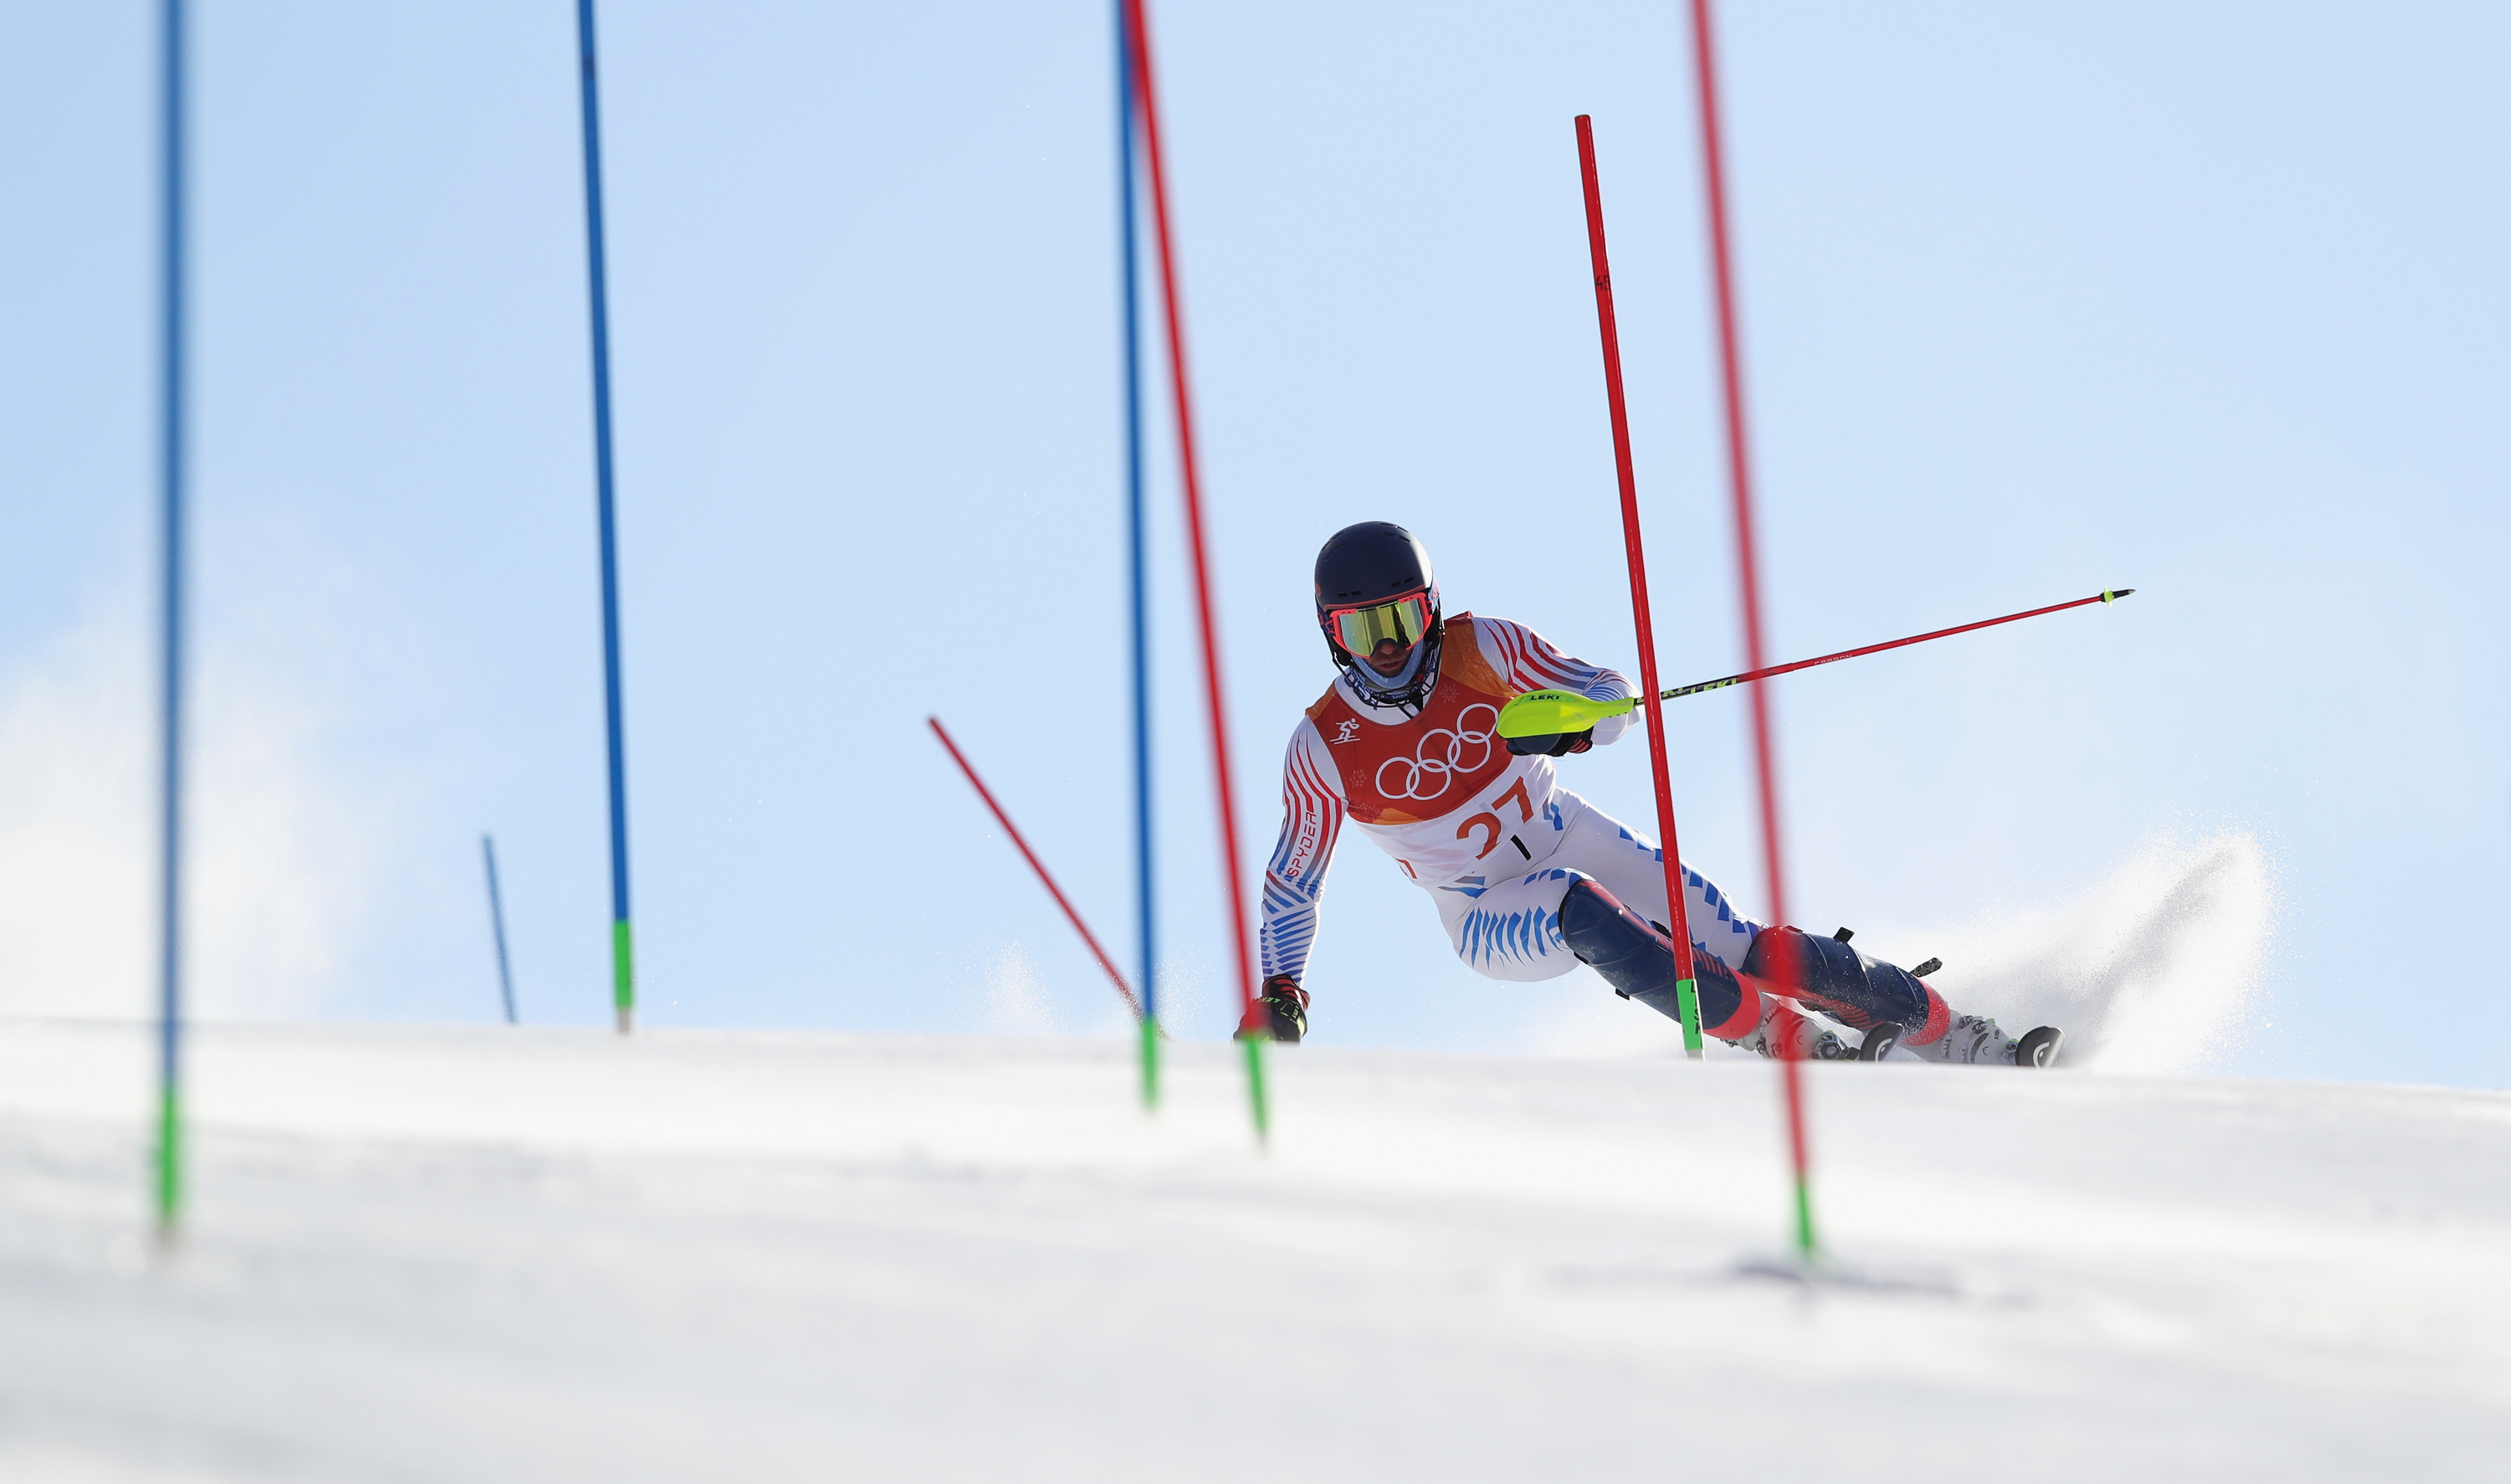 Ted Ligety posted the fourth-fastest slalom run to finish fifth in the alpine combined at Jeongseon Alpine Centre Tuesday. (Getty Images - Alexander Hassenstein)